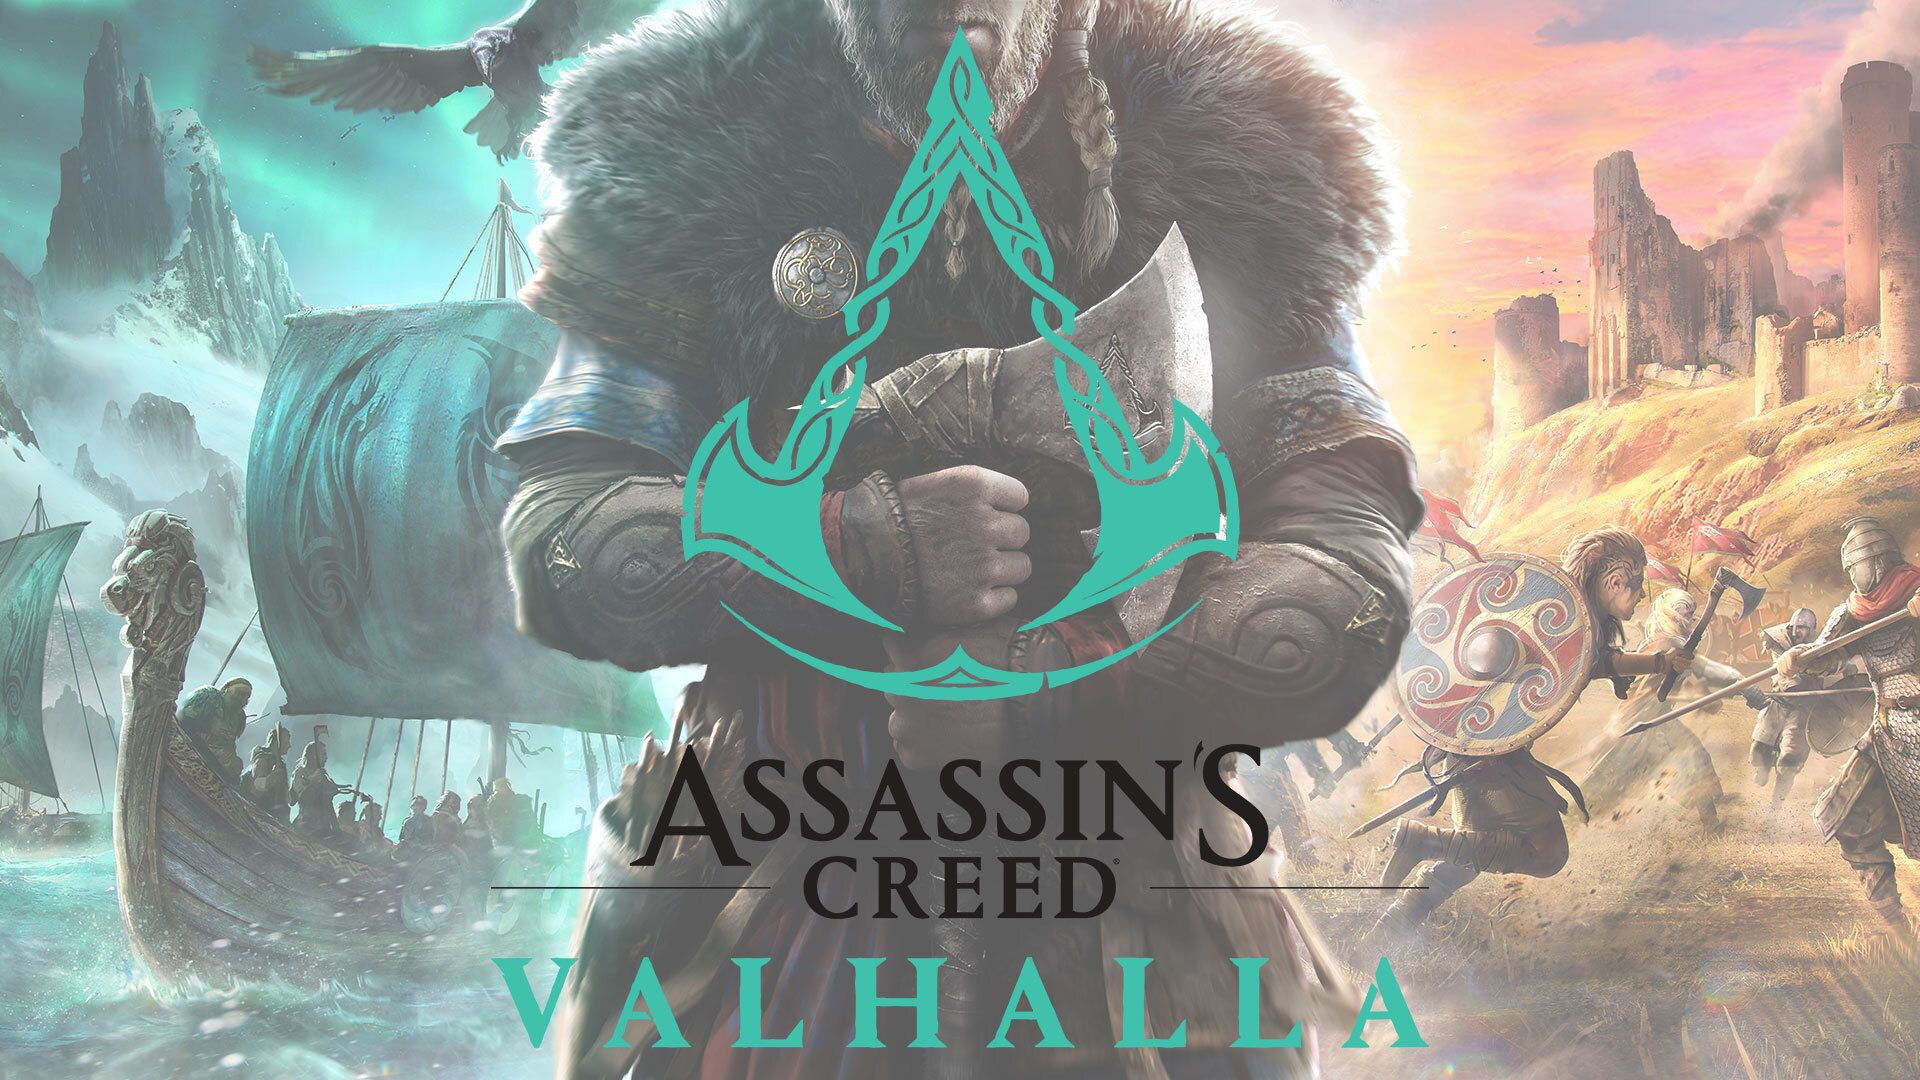 Assassin S Creed Valhalla Wallpapers Top Free Assassin S Creed Valhalla Backgrounds Wallpaperaccess